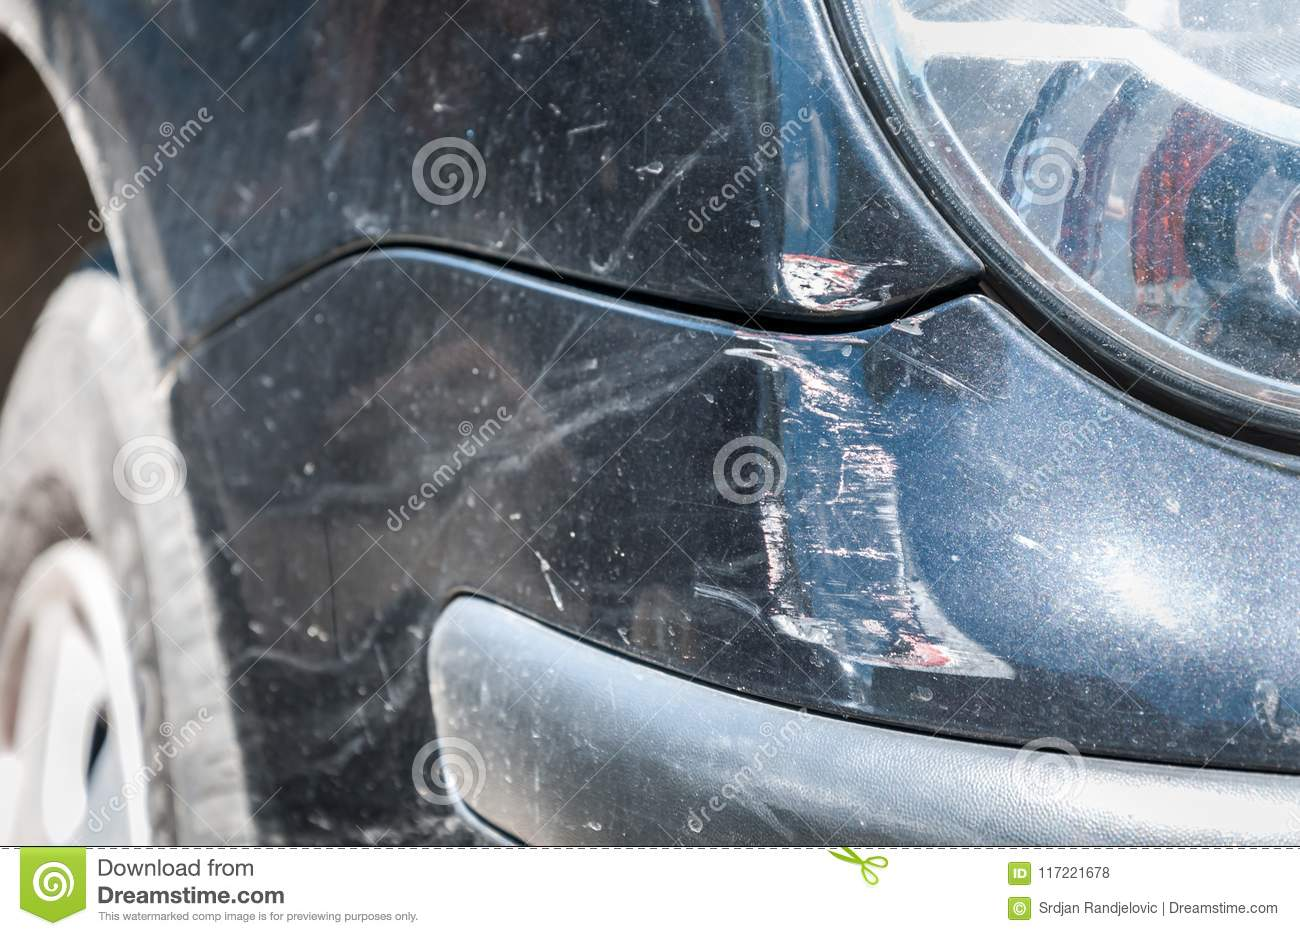 Black Damaged Car In Crash Accident With Scratched Paint And